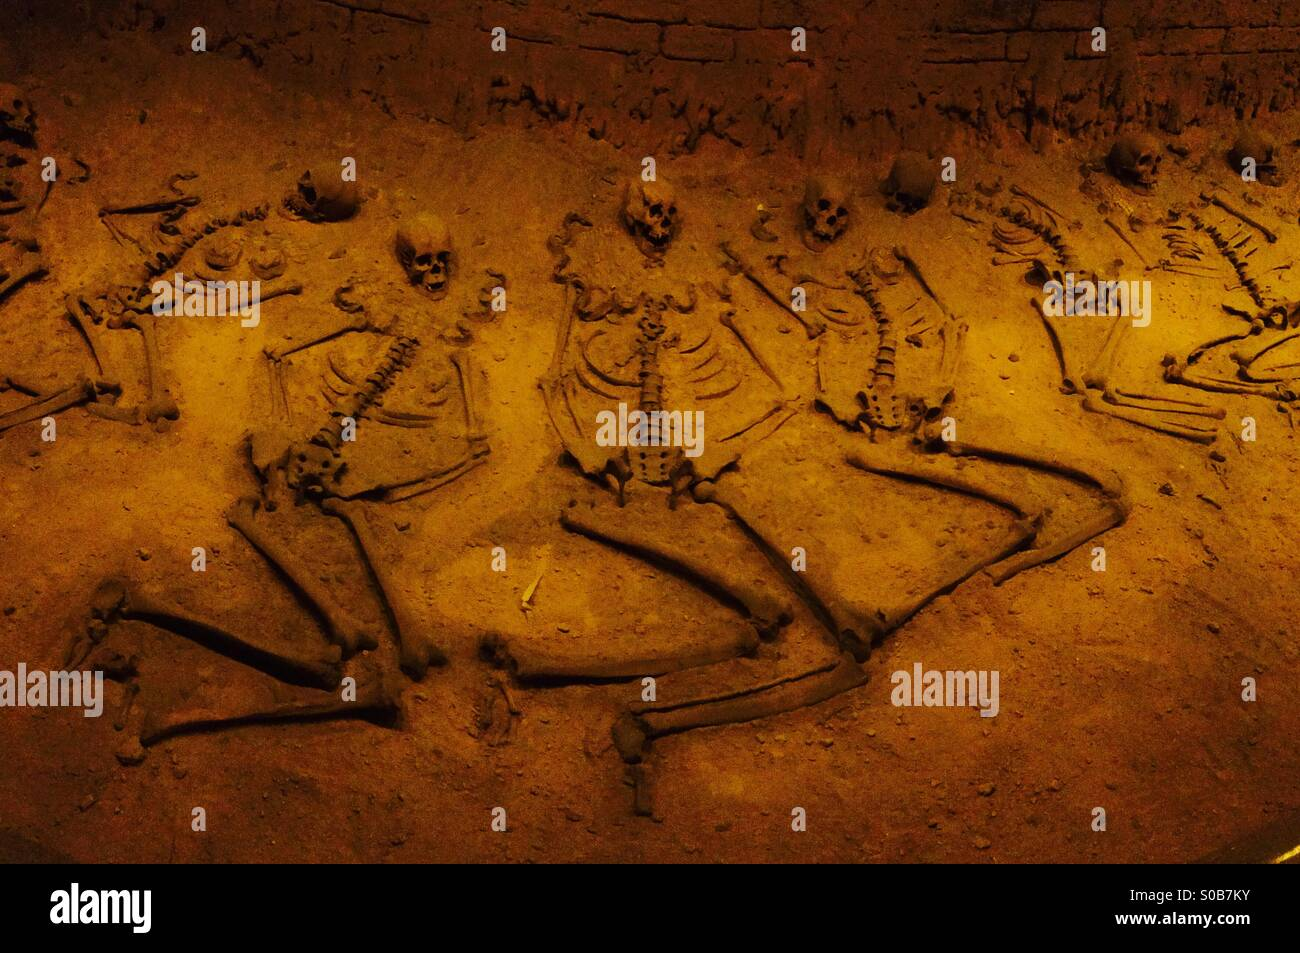 Skeletons in display, Museum of Anthropology, Mexico City - Stock Image